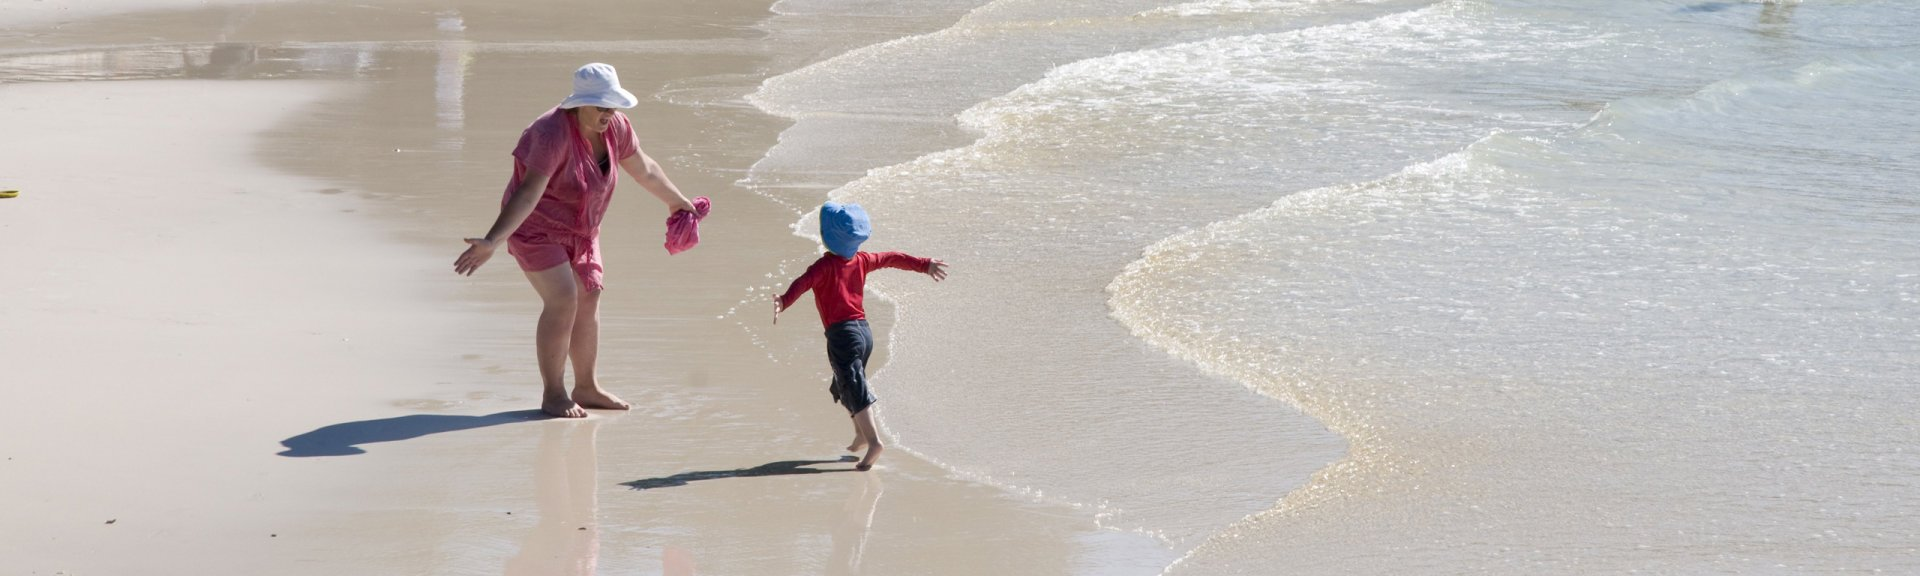 Have fun on the beach at Booderee National Park